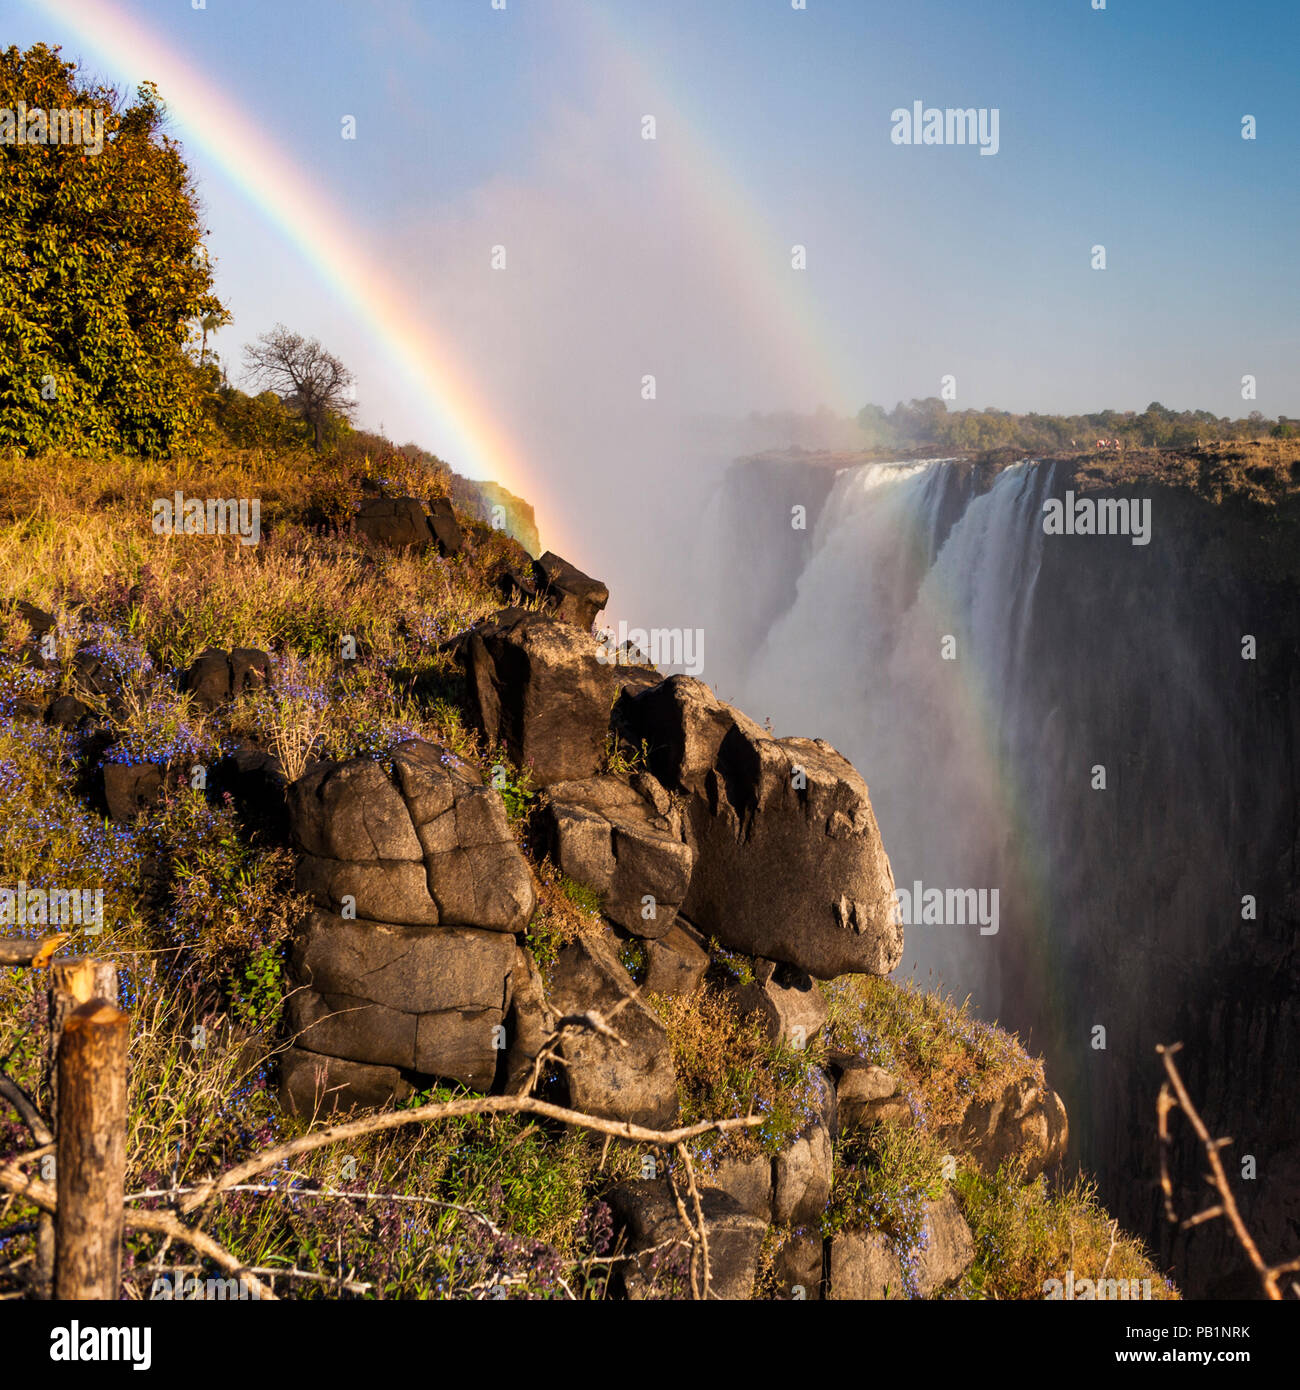 The Victoria Falls in Zimbabwe, Africa - Stock Image